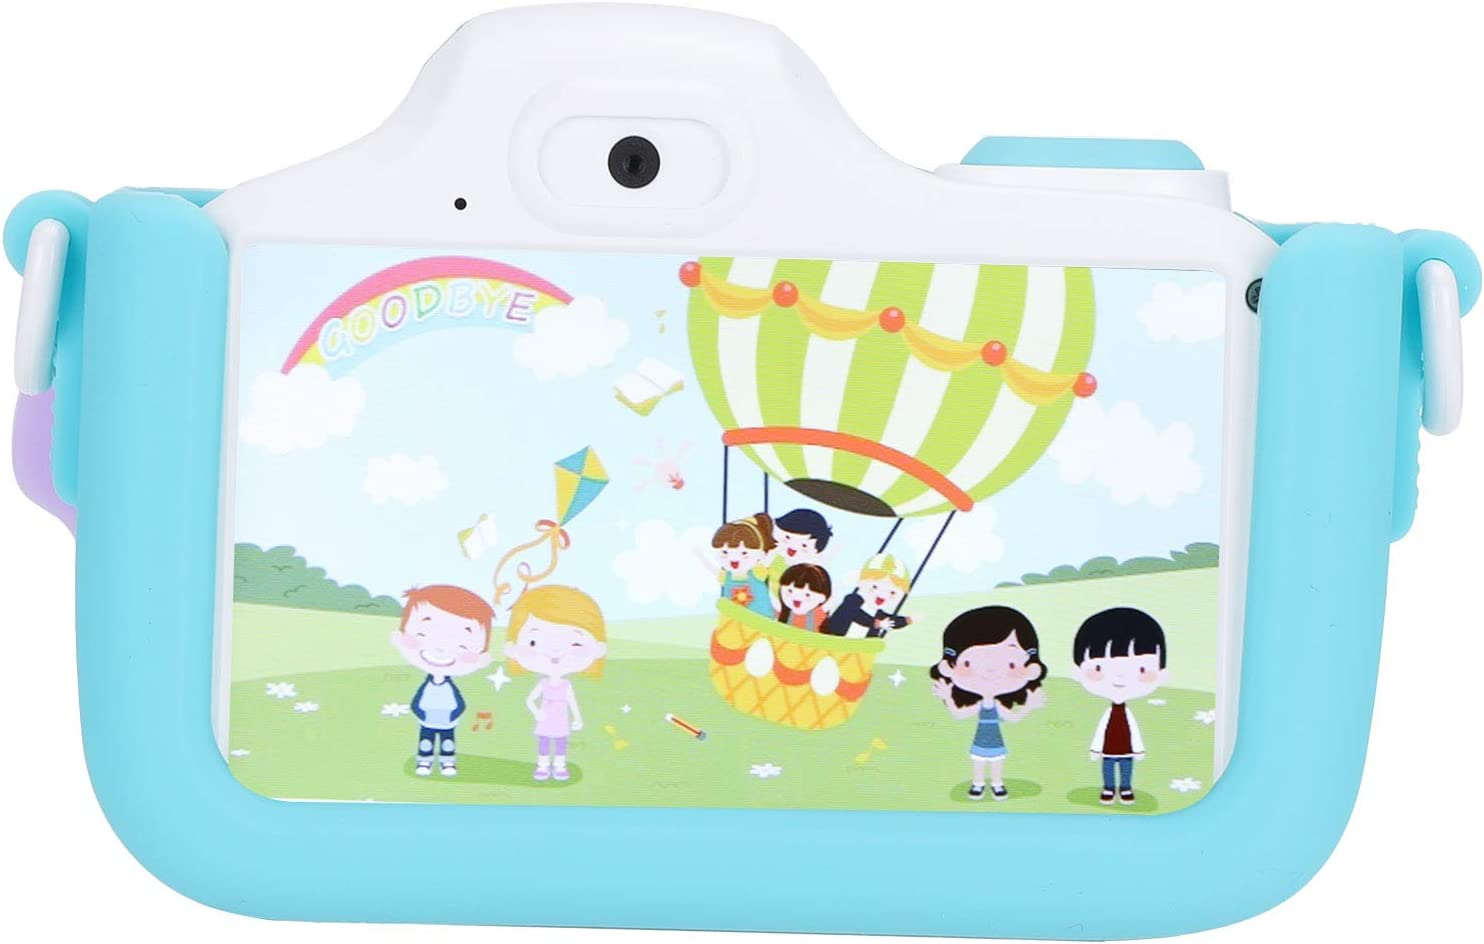 Camera Toy Kids Gift WIFI with 70% OFF Outlet Sle Silicone Digital Omaha Mall